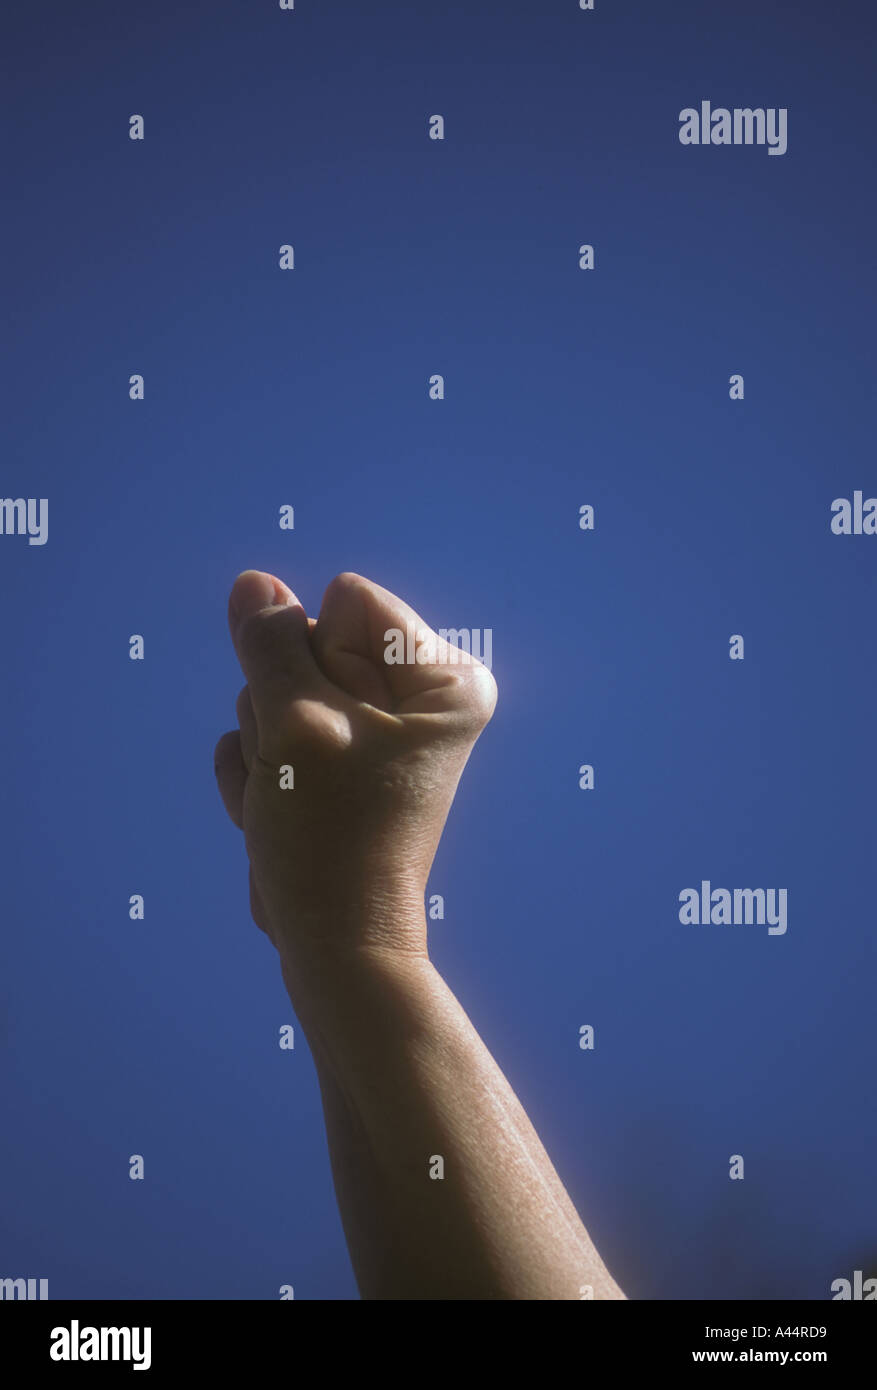 Raised Fist - Stock Image